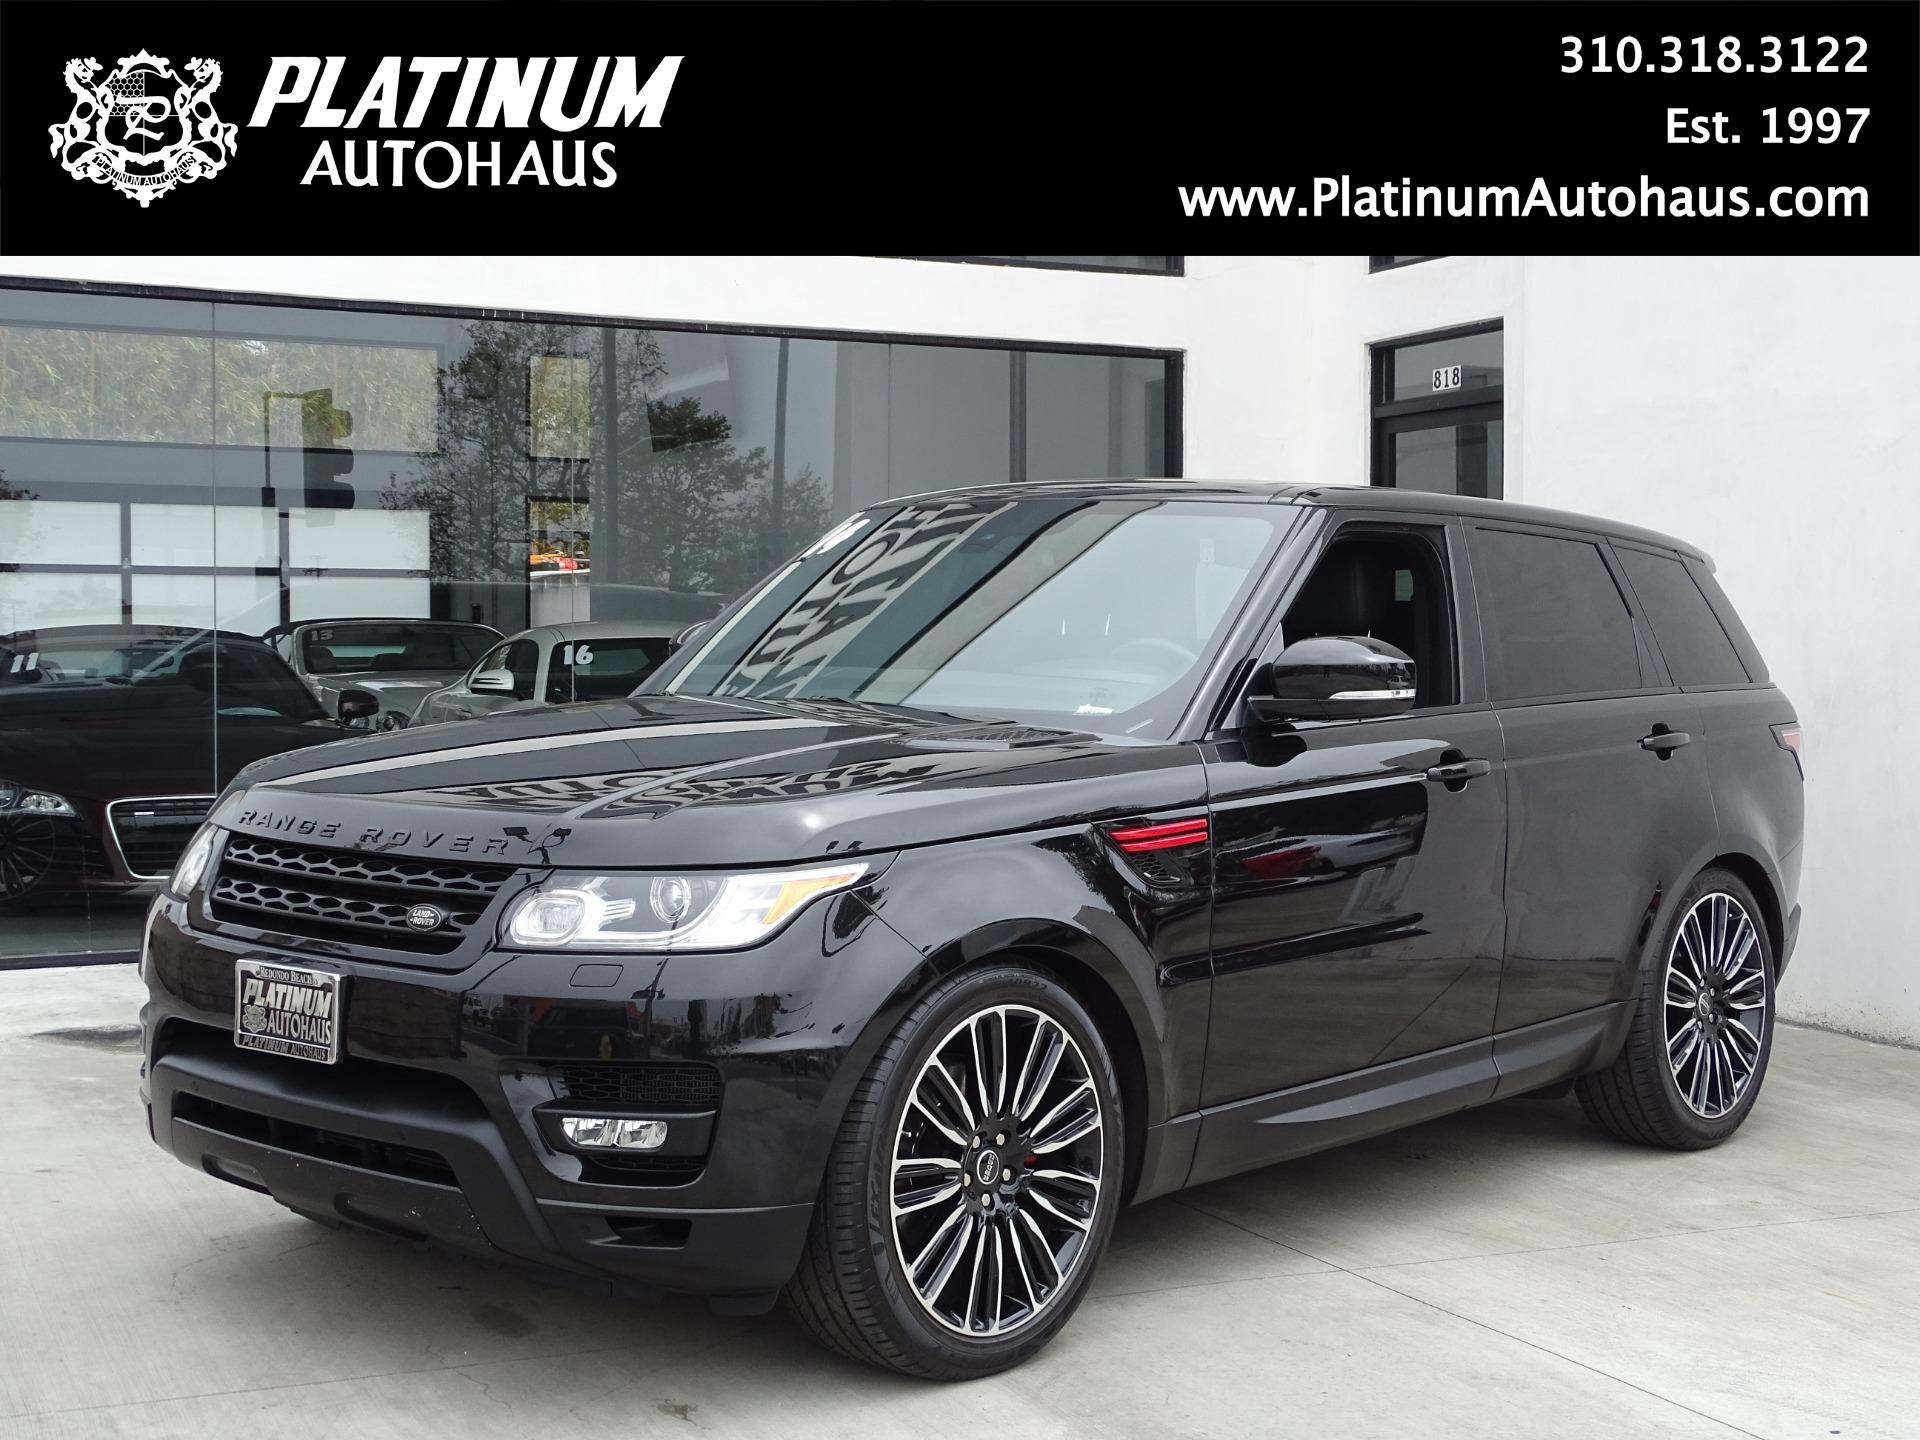 2014 Land Rover Range Rover Sport HSE Stock 6093 for sale near